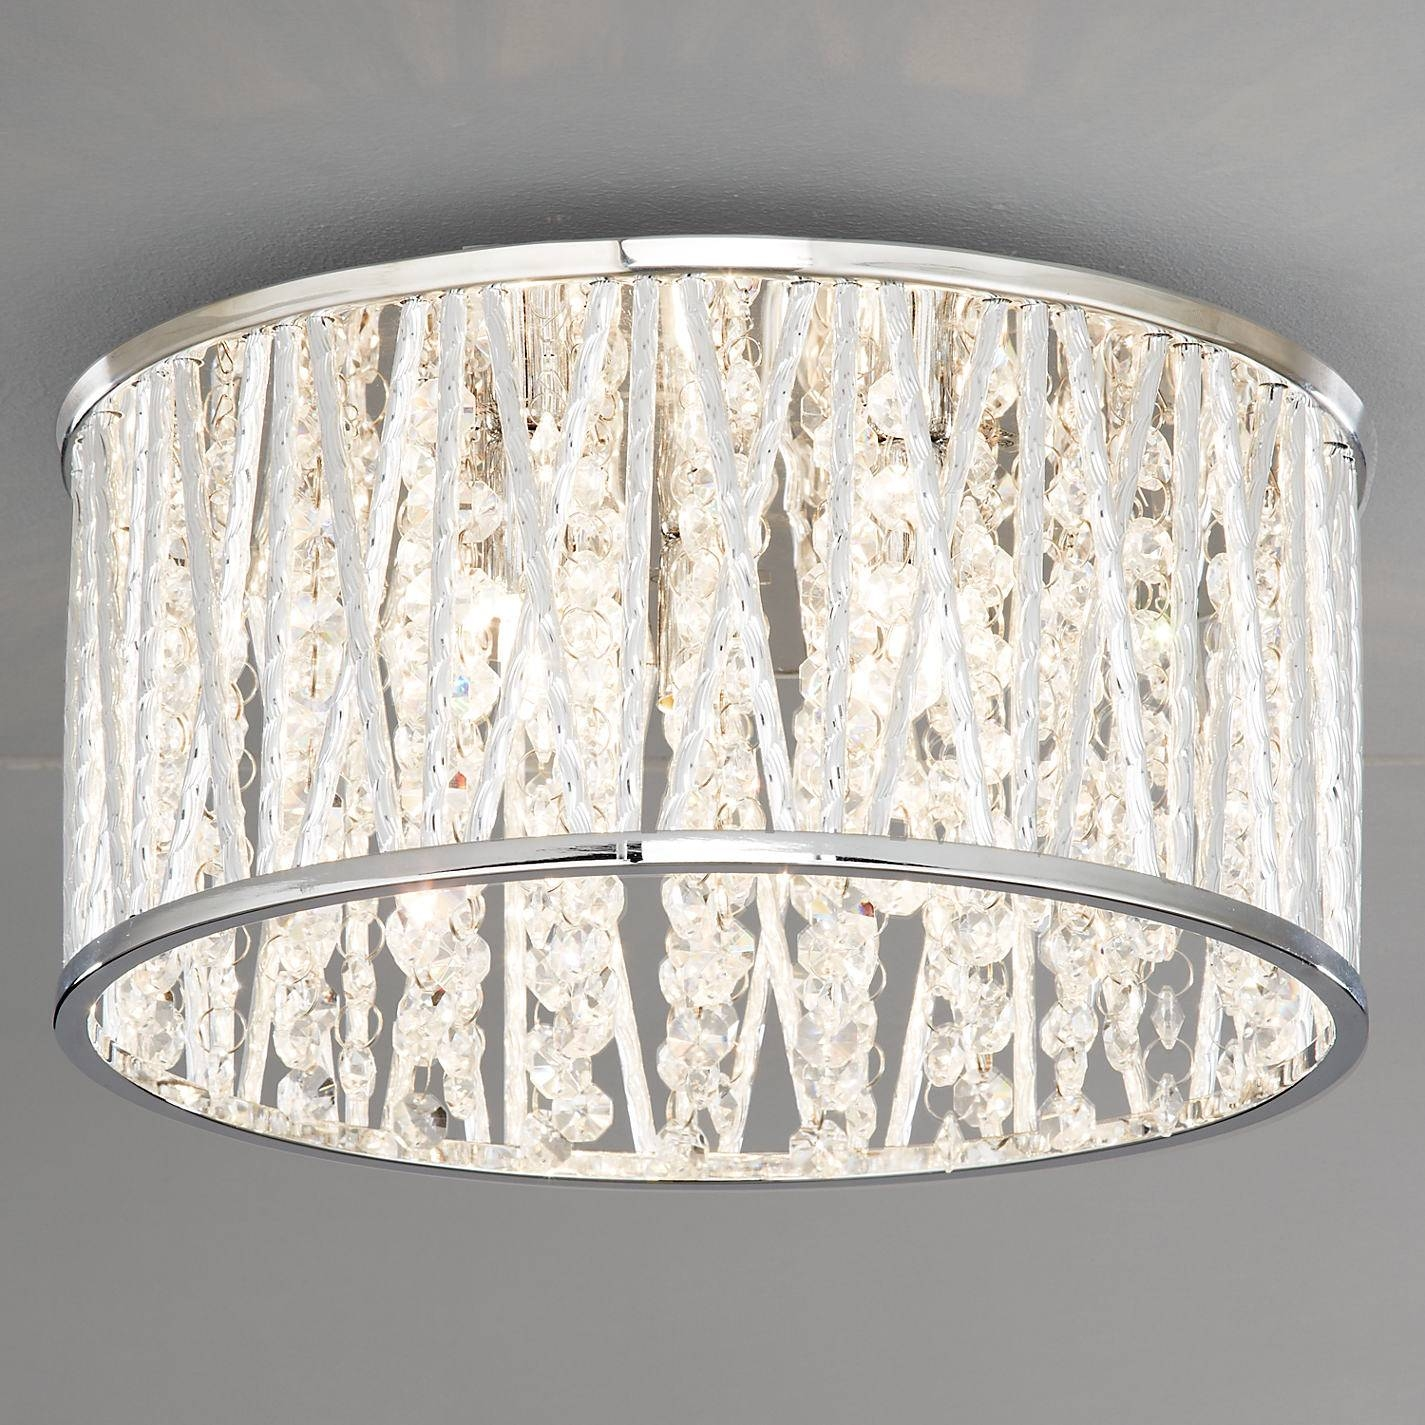 Drum Ceiling Light With Crystals | Home Lighting Design Ideas with John Lewis Ceiling Lights Shades (Image 6 of 15)